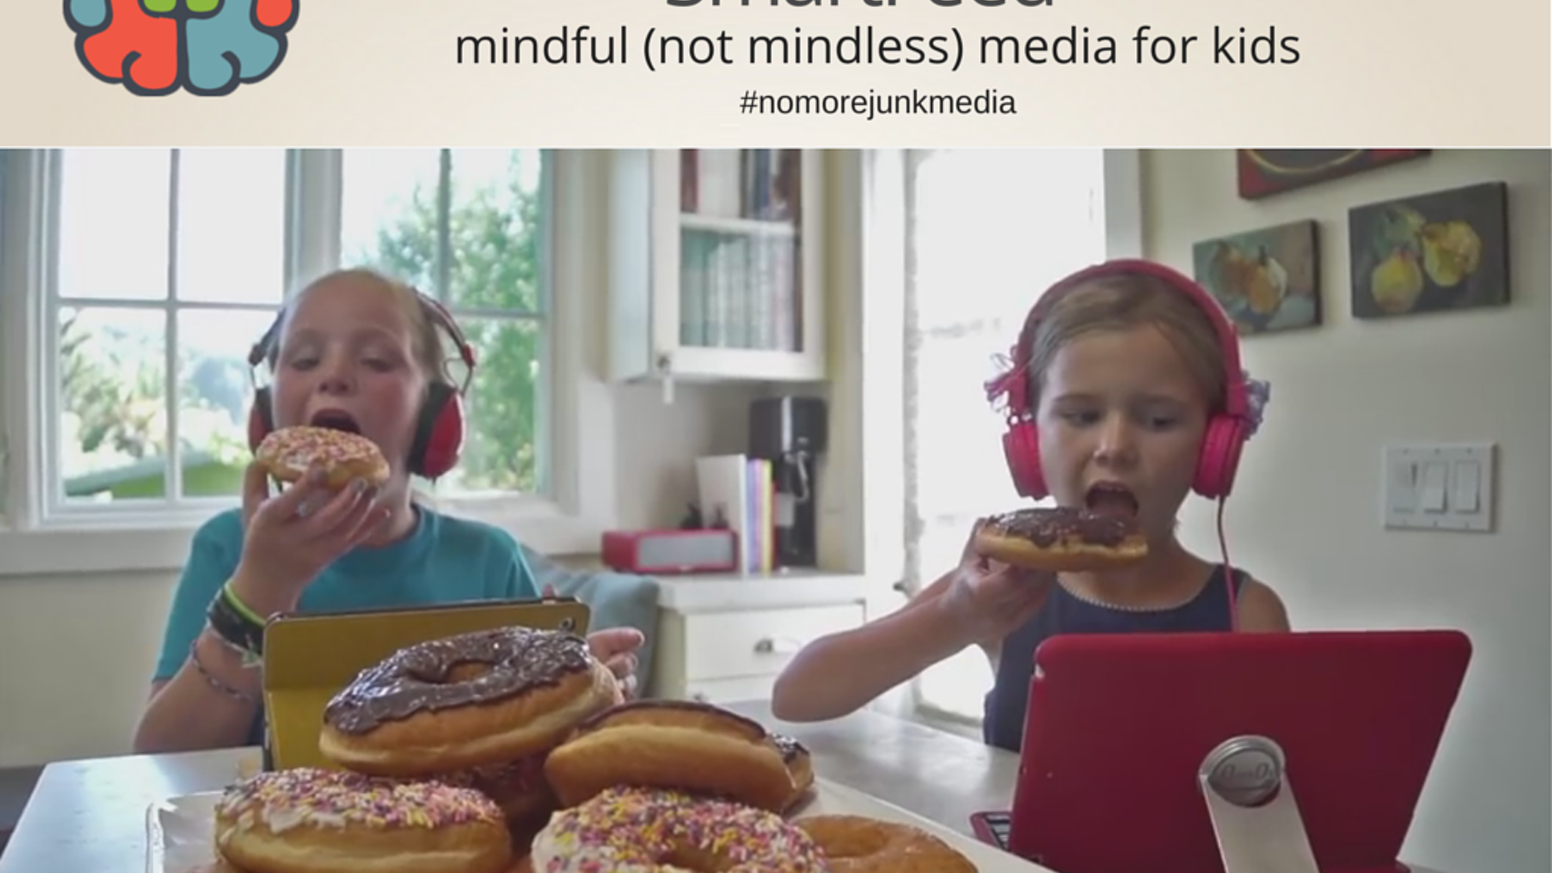 Thank you, Superhero SmartFeed Backers! If you'd like to join us in building the parent tool to better manage kids' media, sign up as a beta tester! Mindful - not mindless - media is in the works...